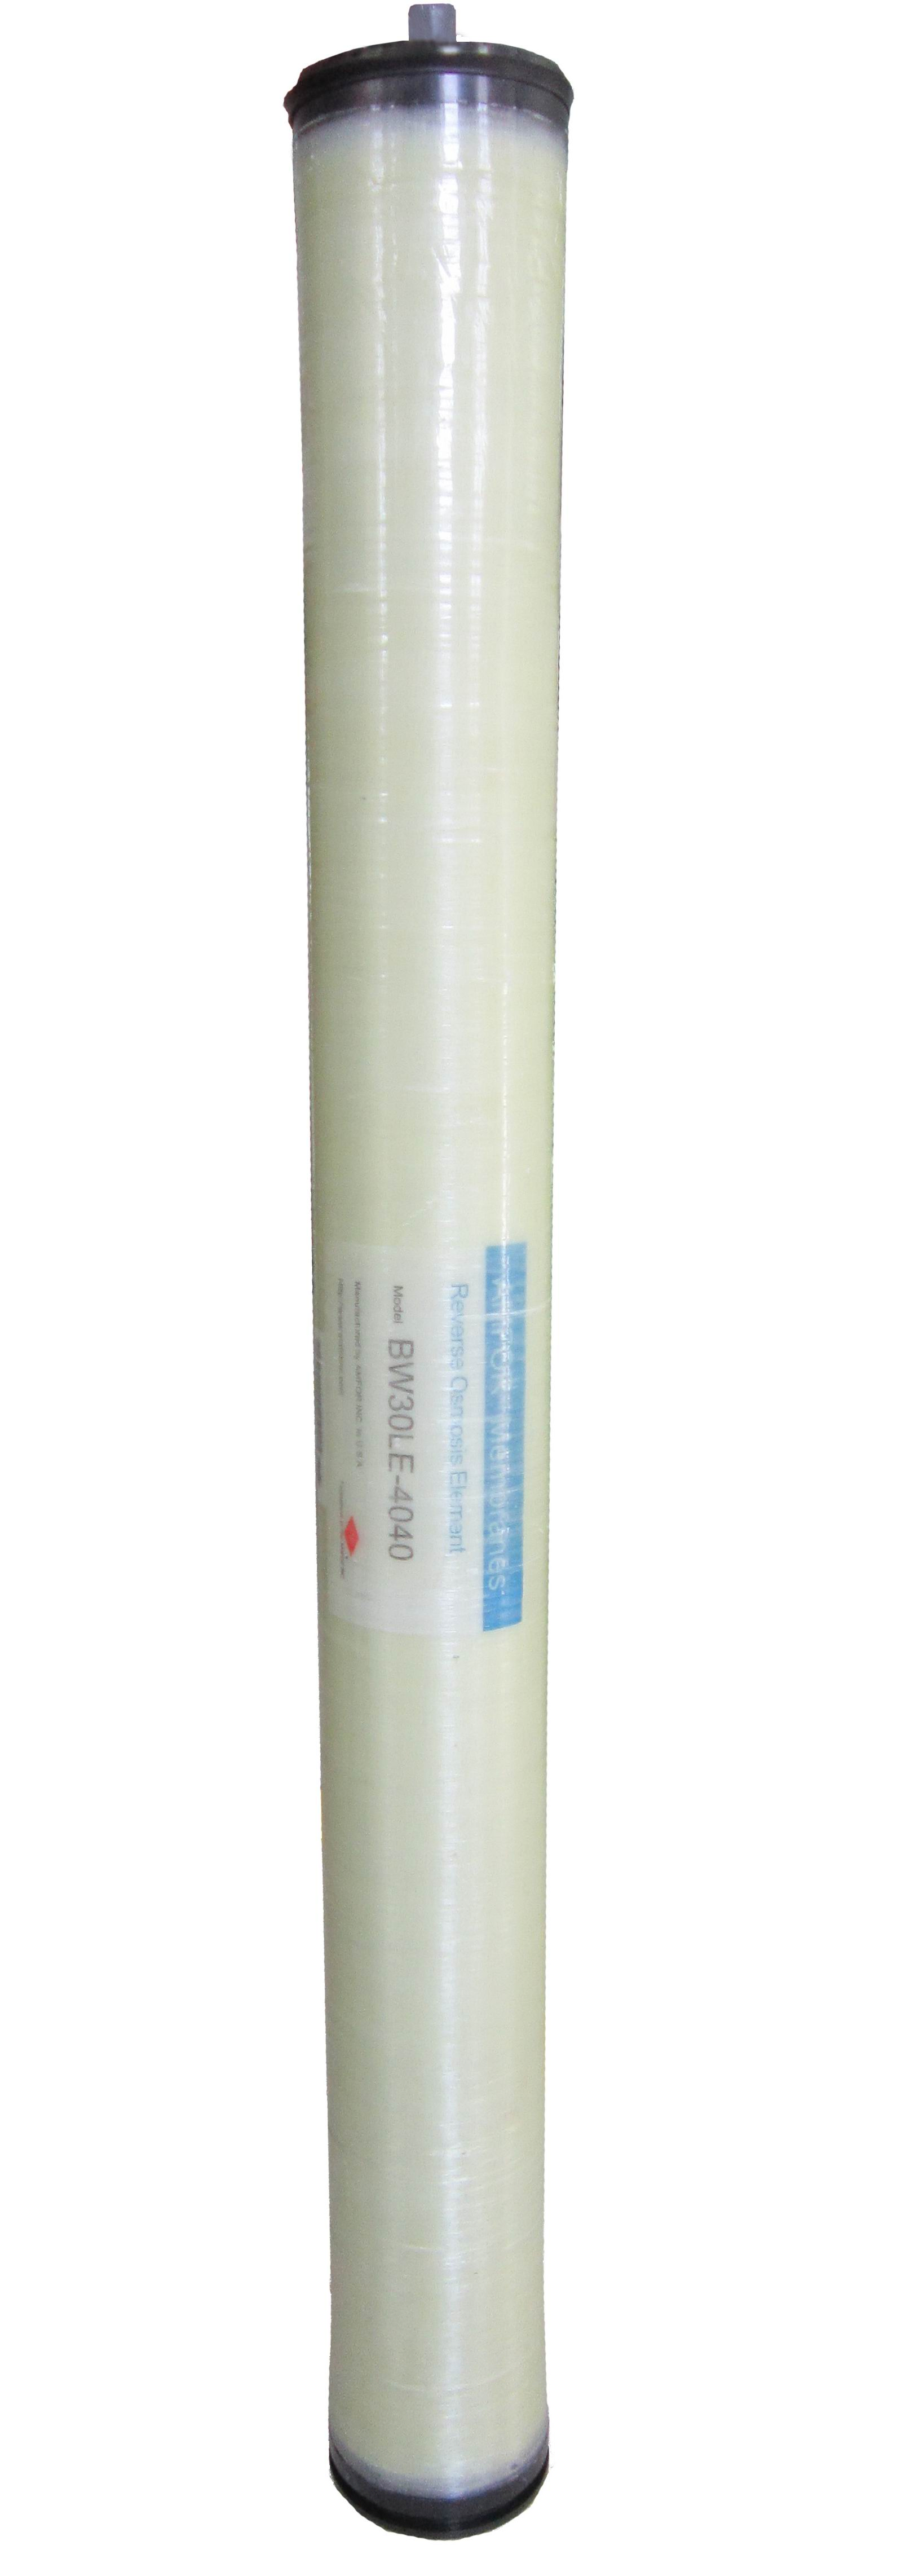 4 Inch RO Membrane With Fiber Glass-Wrapped (BW30-4040)